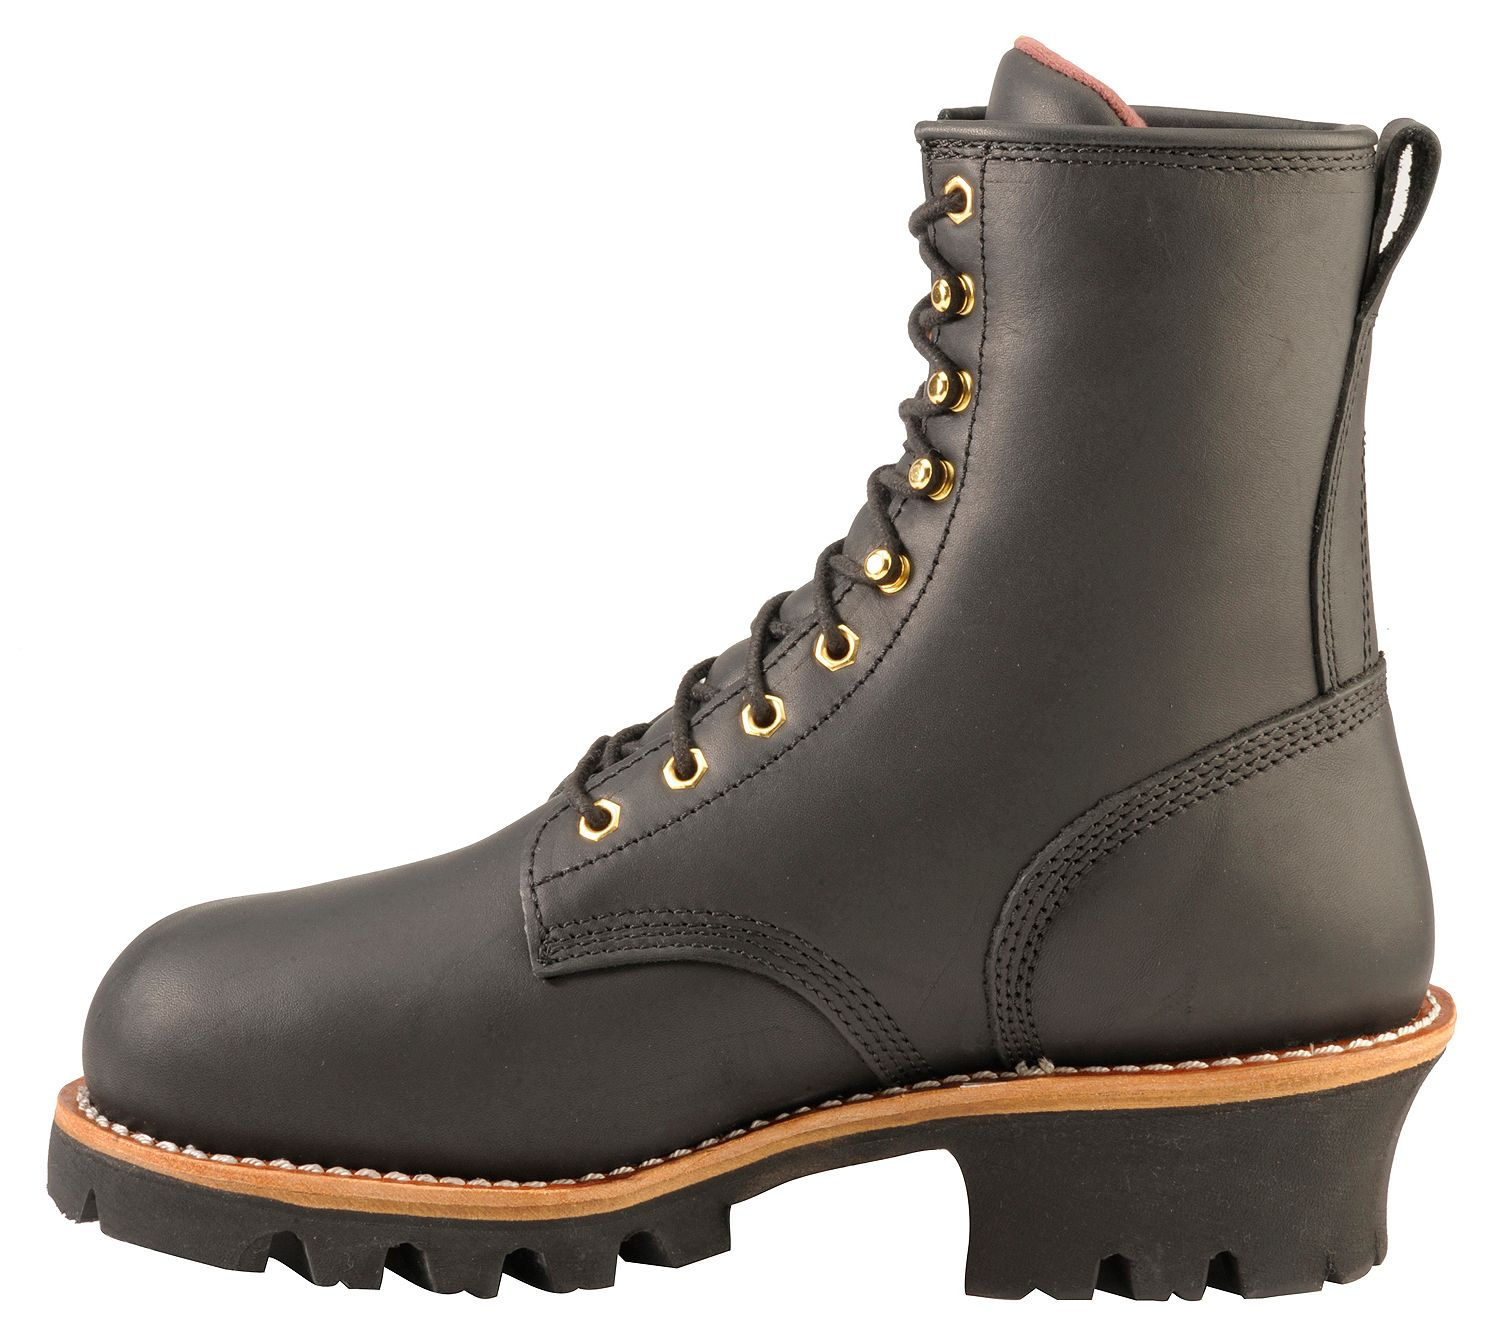 Chippewa Women S Oiled Waterproof Amp Insulated Logger Boots